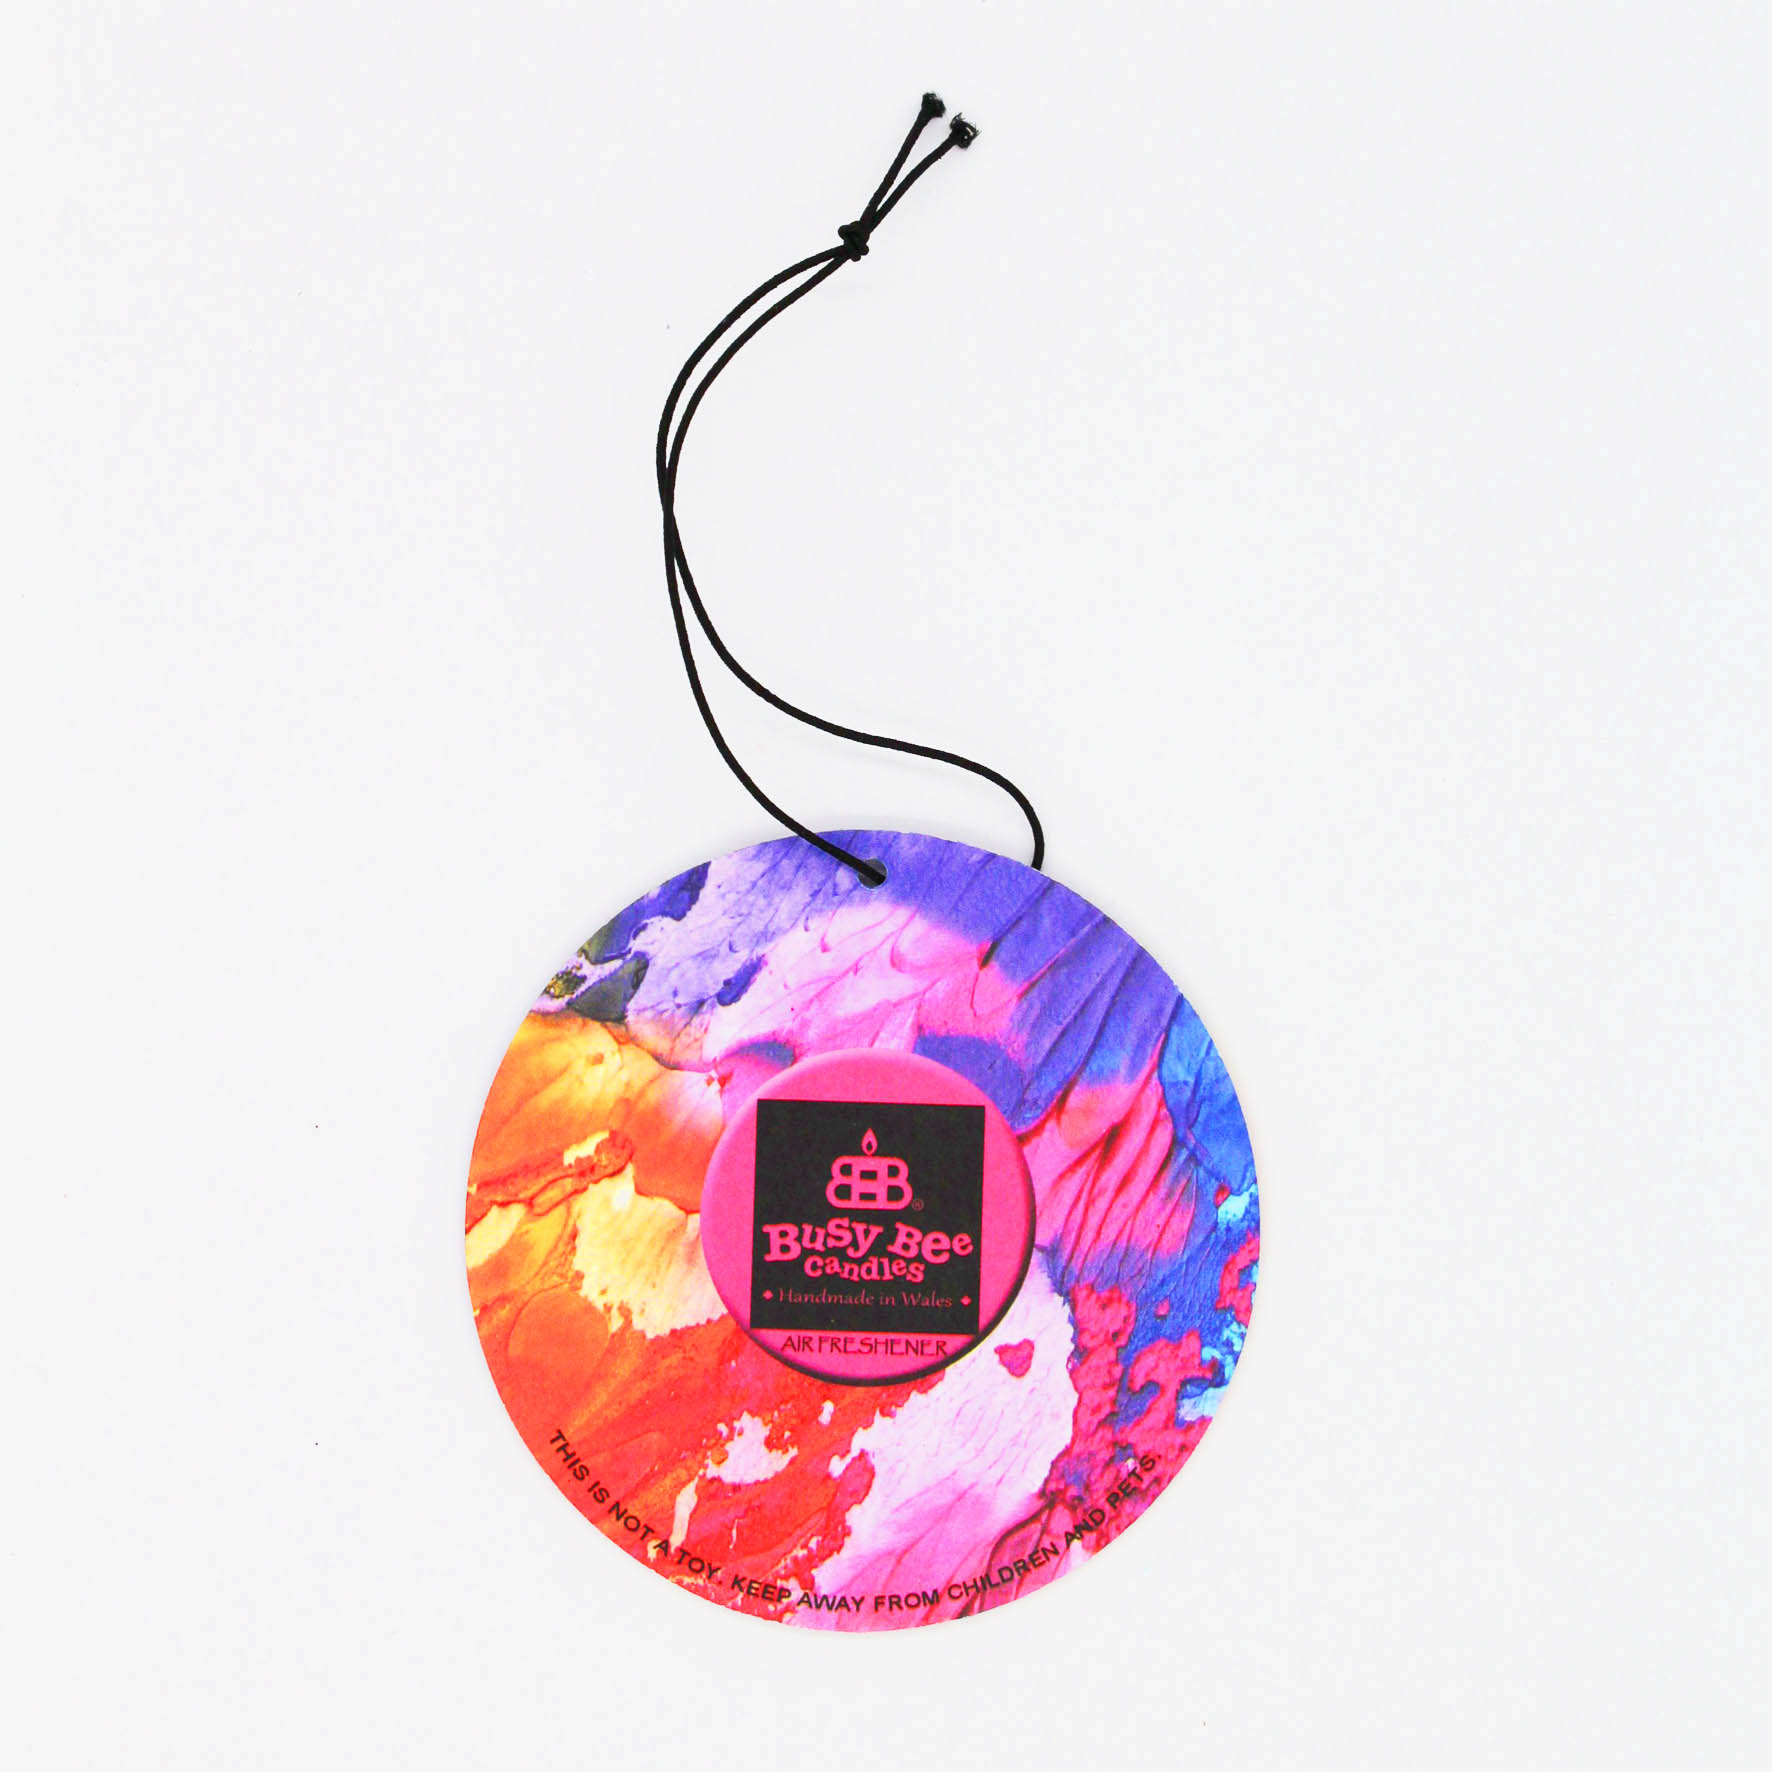 Asian Amber Hanging Air Freshener